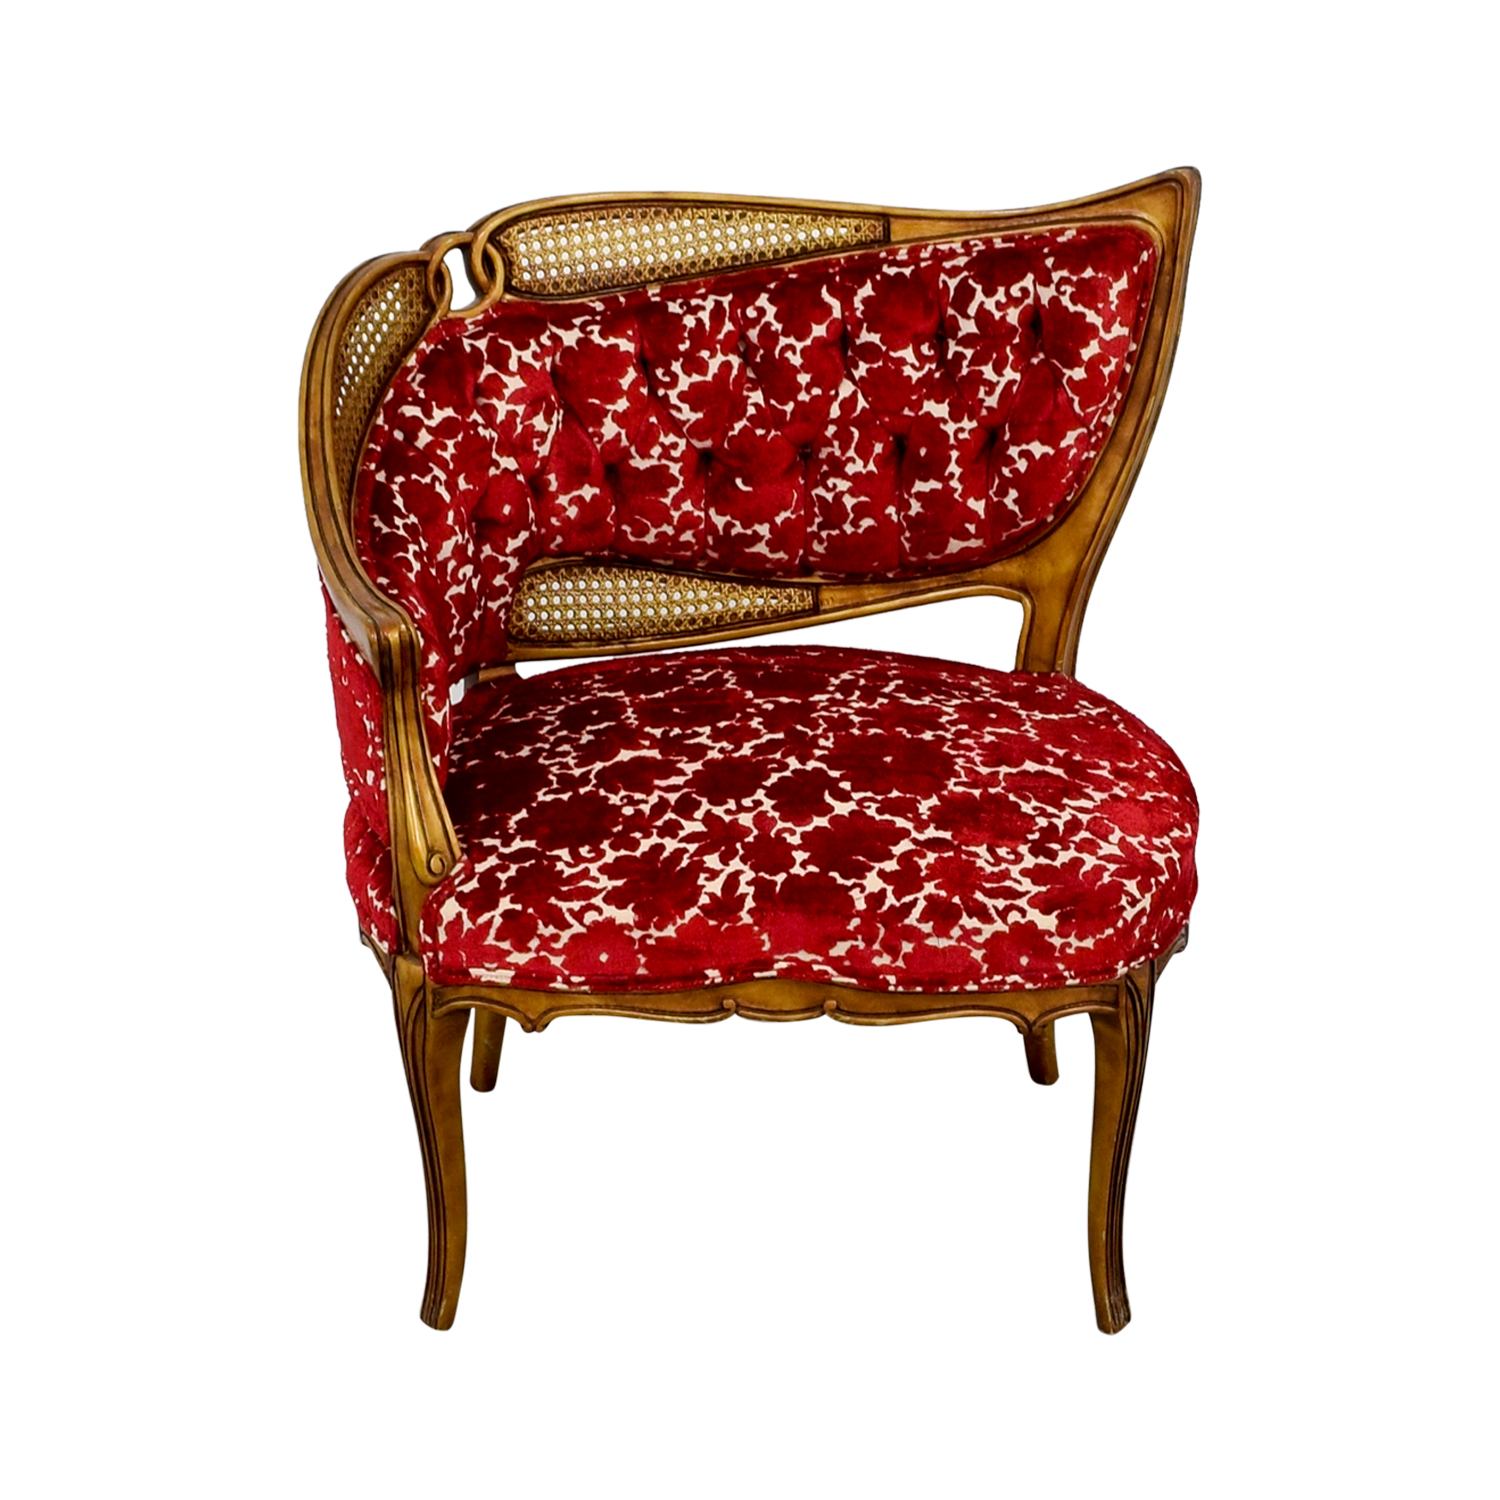 Red and Gold Upholstered Wave Back Chair used